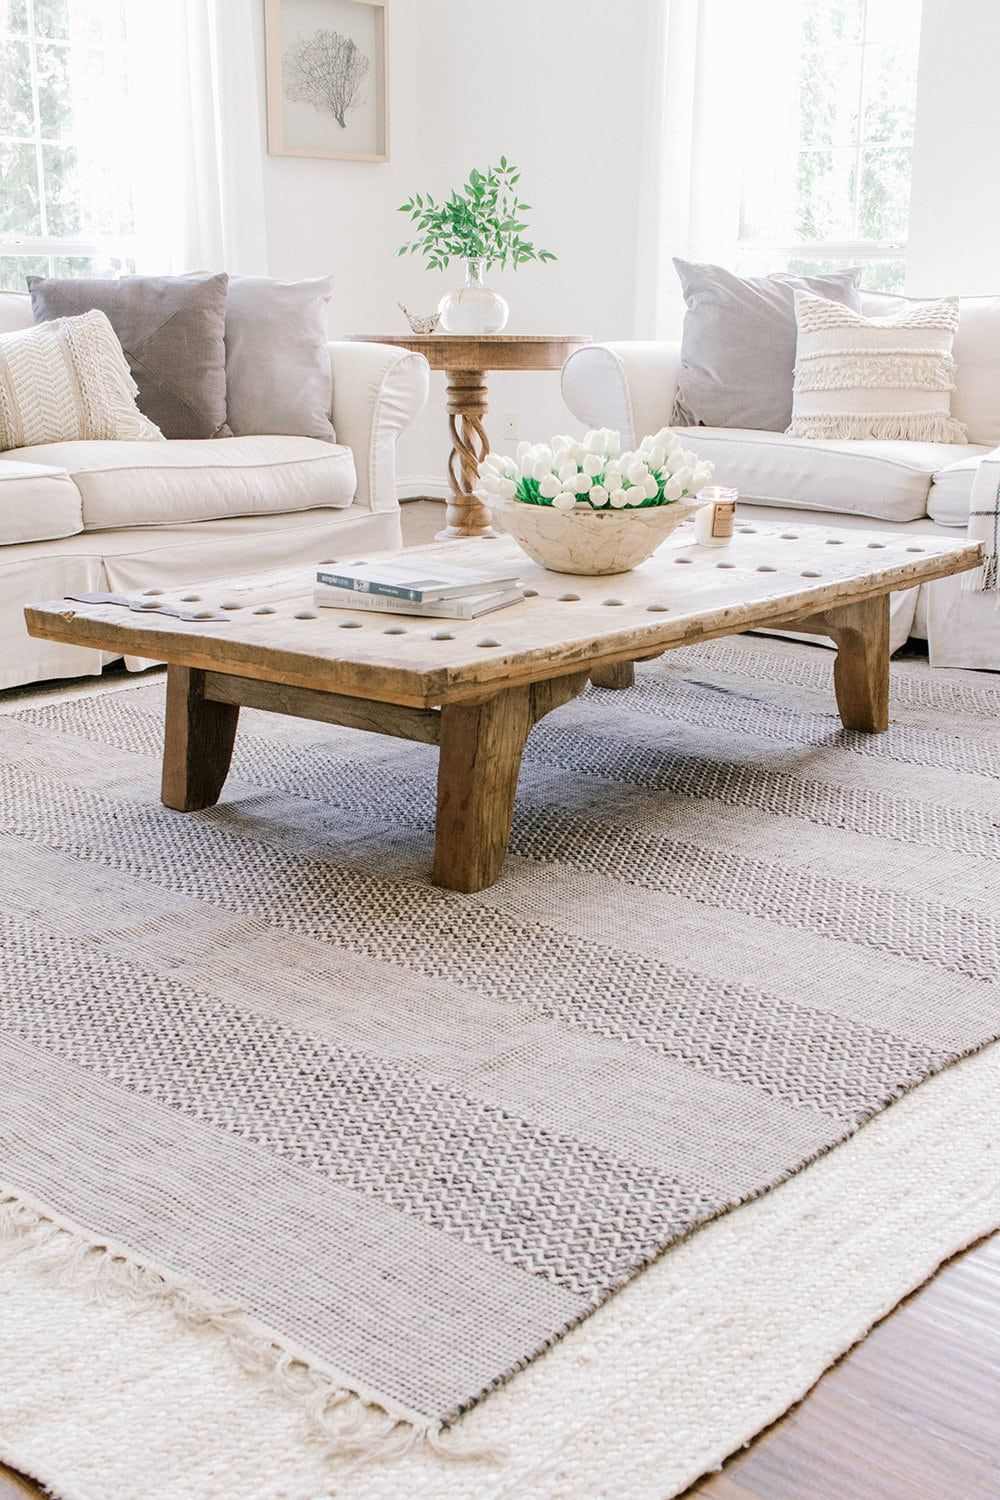 Home Decorating Trends 2020 24 Popular Interior Decor Ideas In 2020 Farmhouse Rugs Living Room Trending Decor Rugs In Living Room